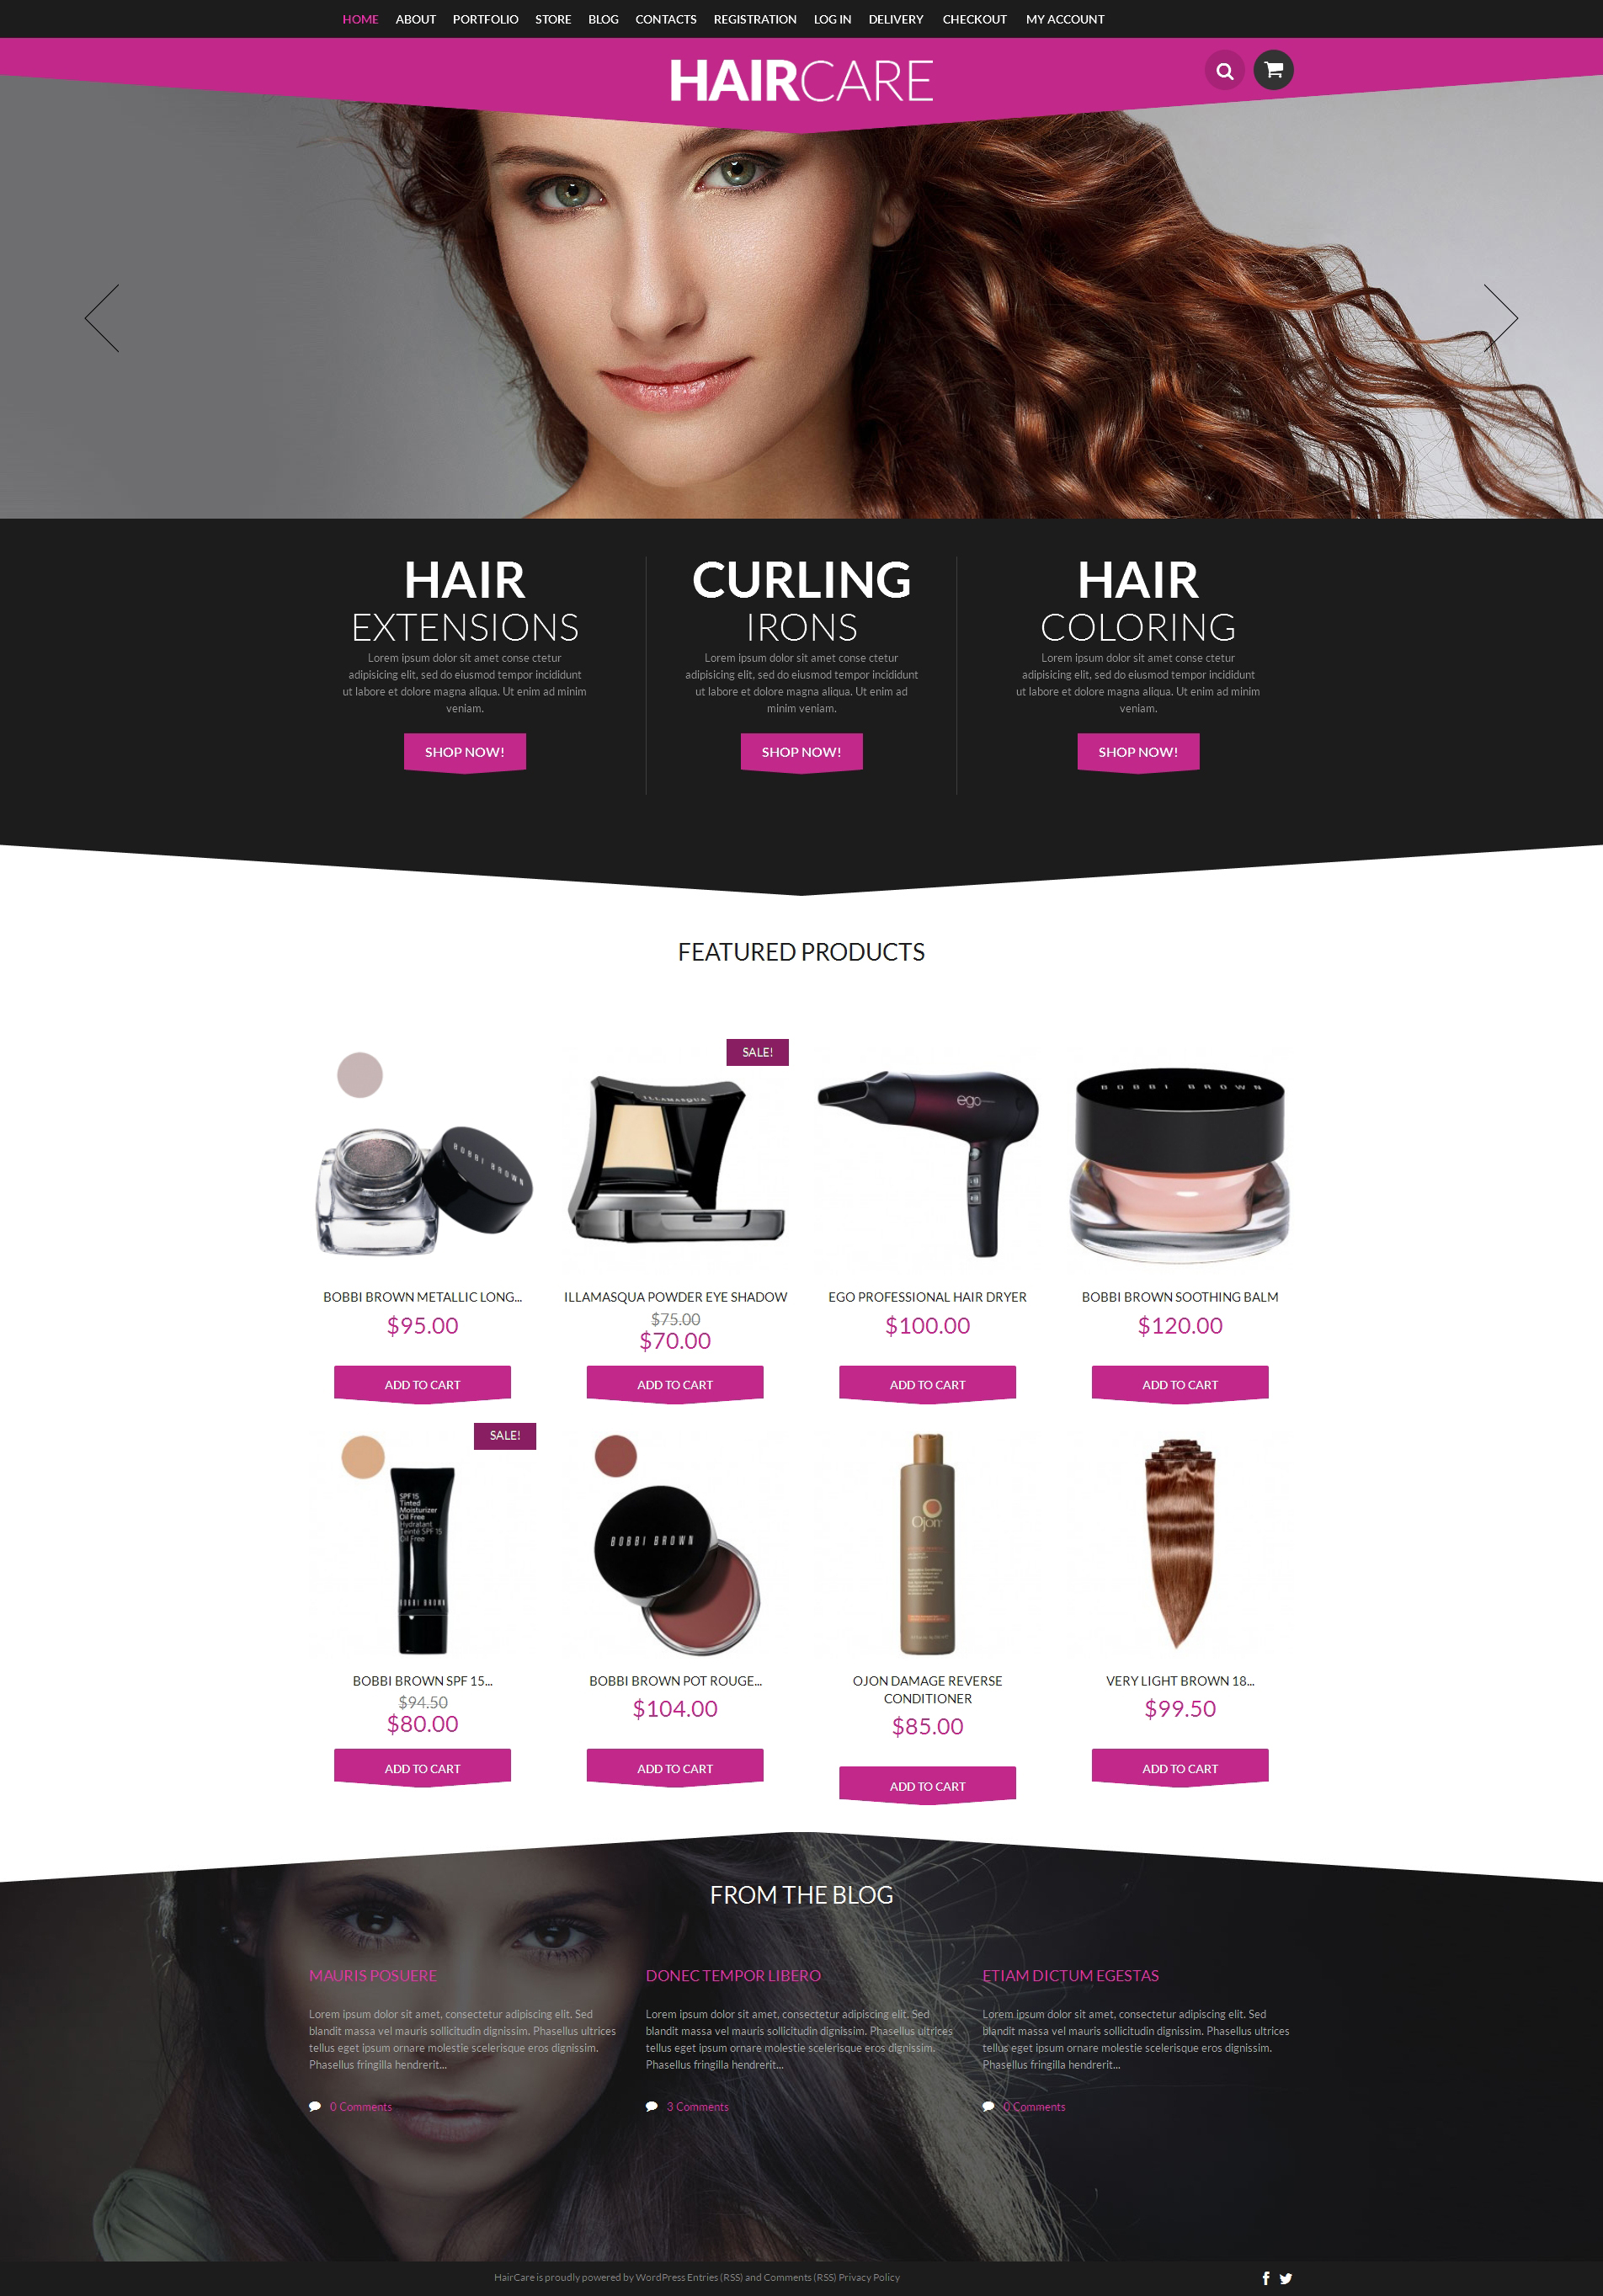 Hair Styling Supplies Shop WooCommerce Theme - screenshot